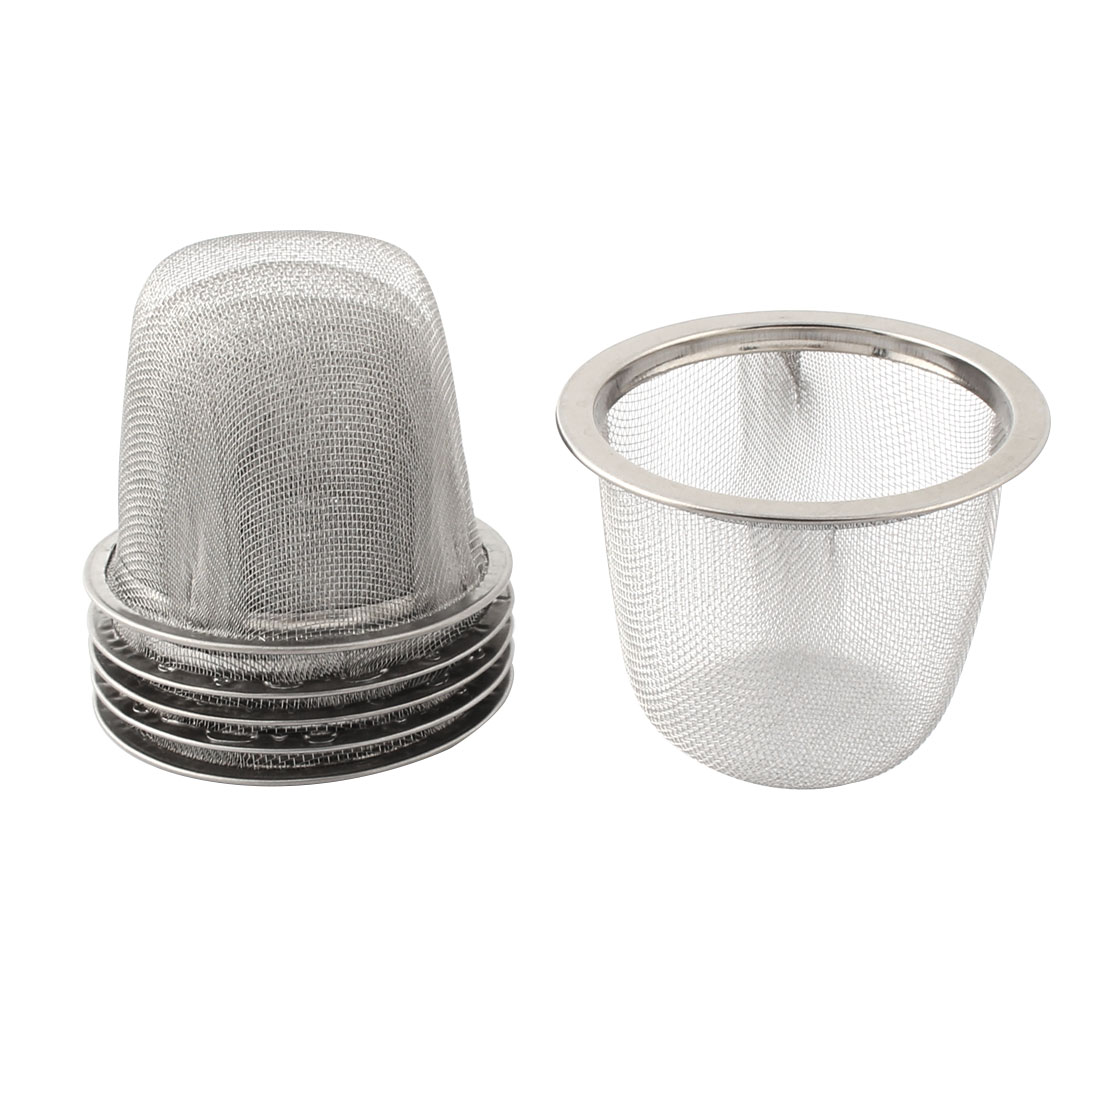 Tea Leaf Spice Stainless Steel Round Wire Mesh Filter Strainer 6cm Dia 6pcs